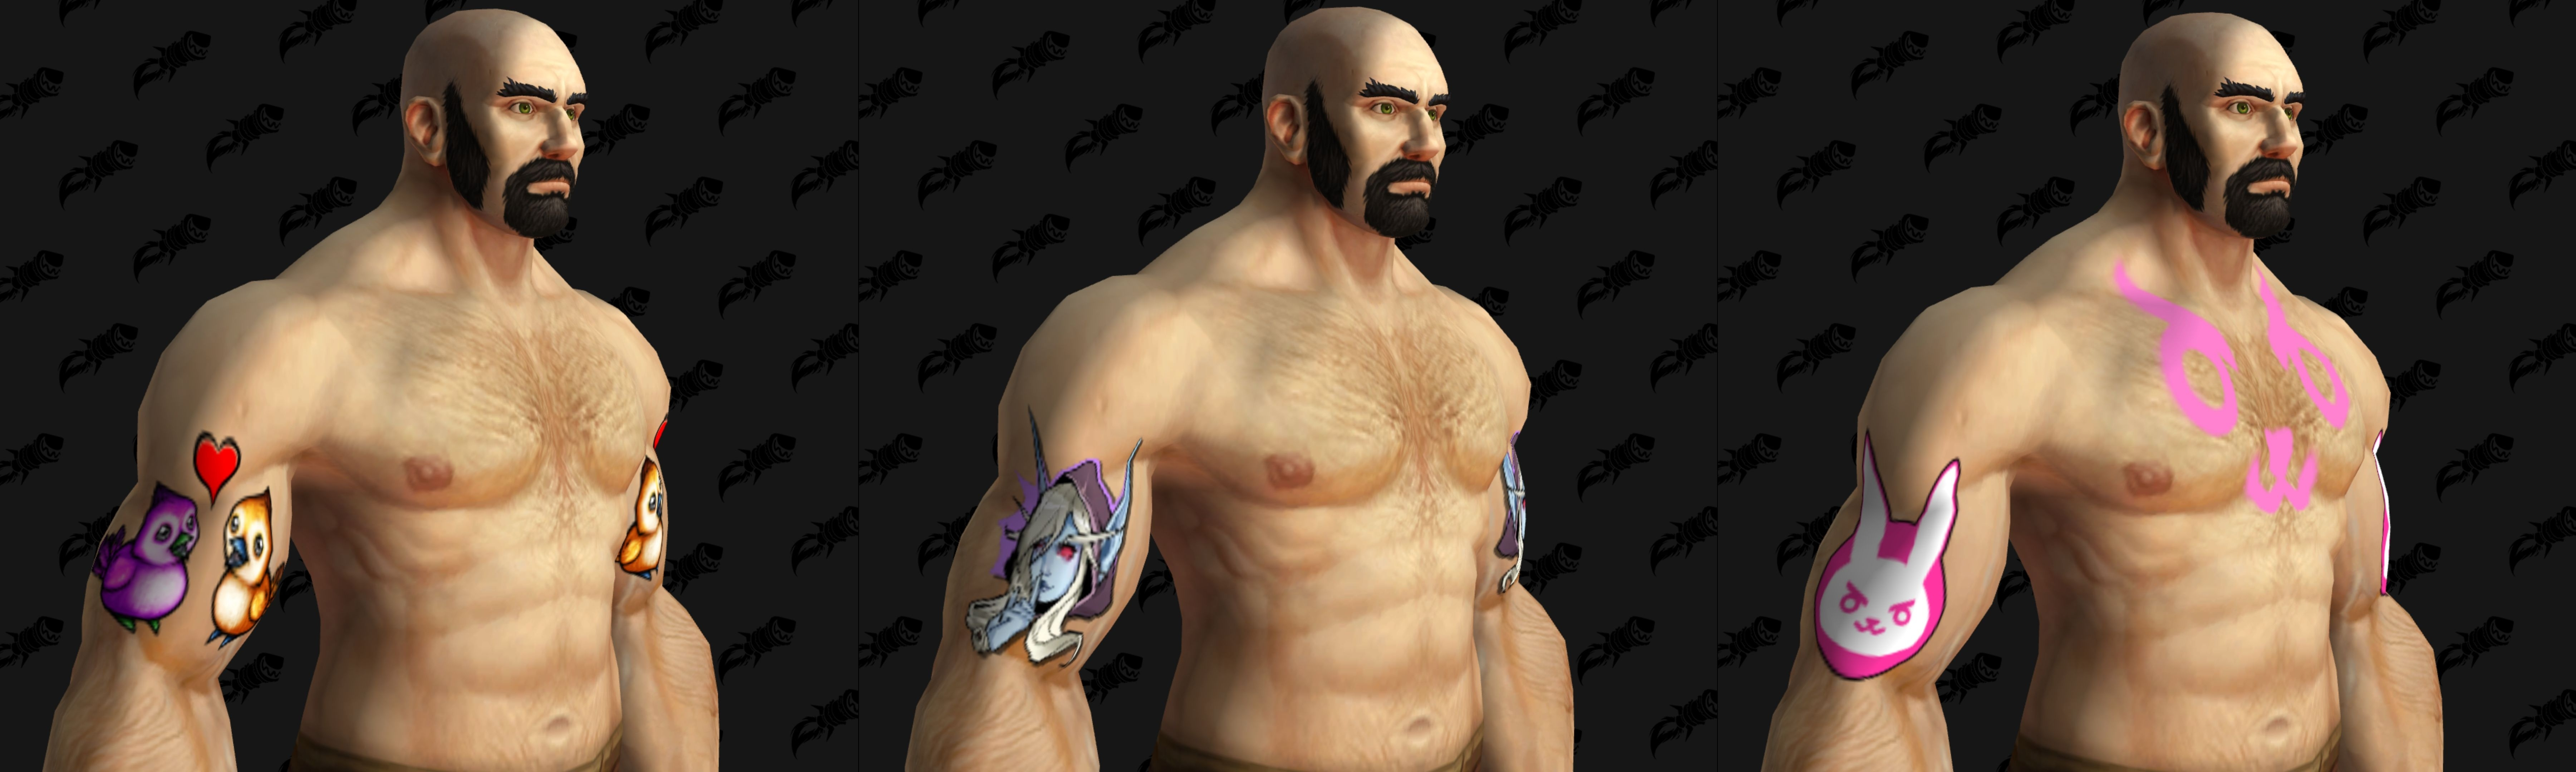 Battle For Azeroth 40118 Updates Tattoo Customization